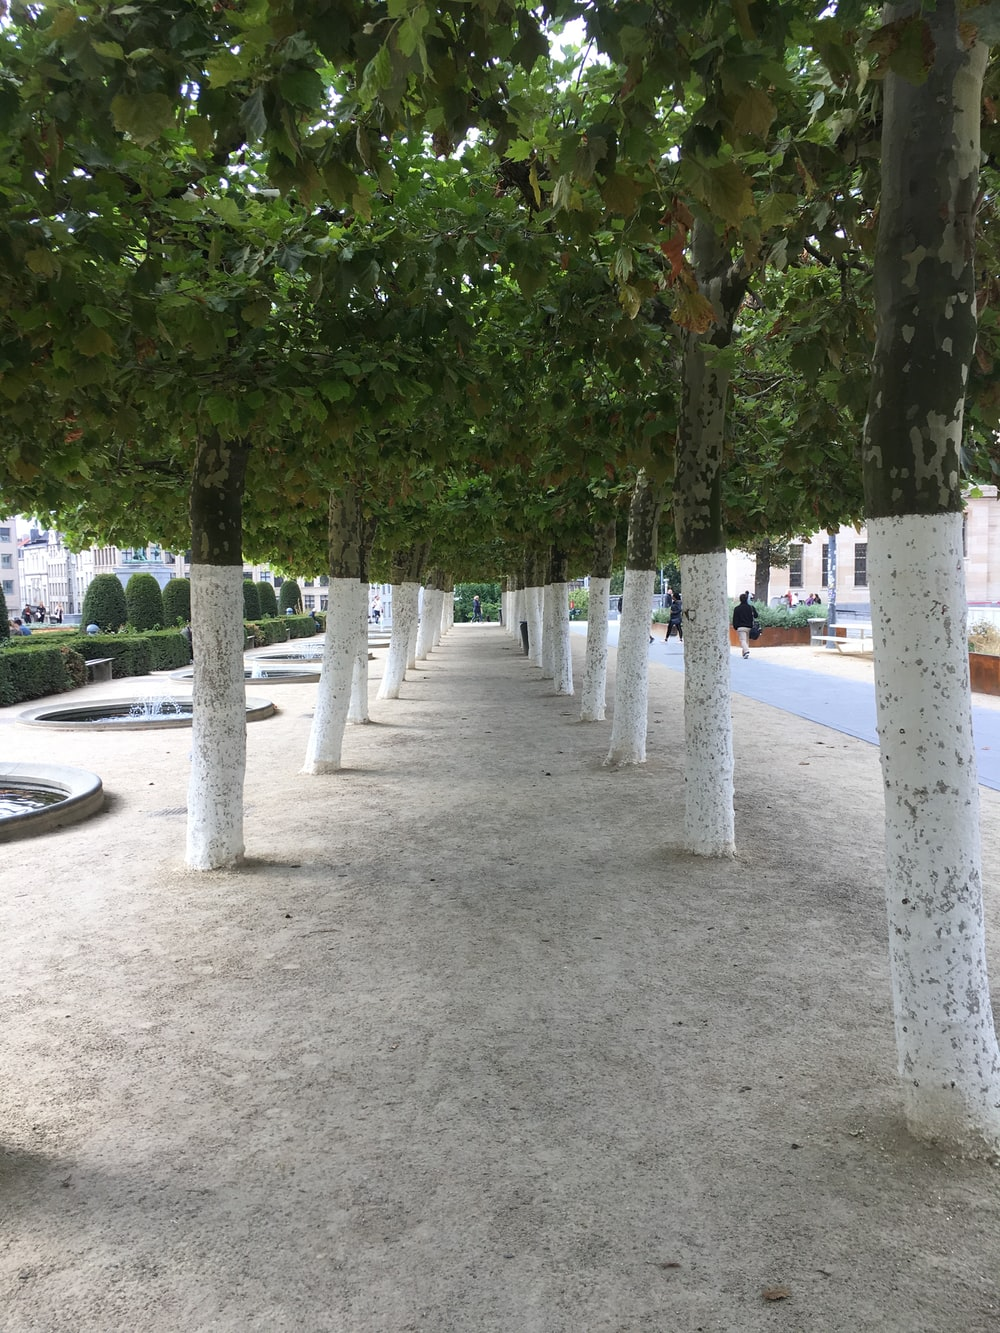 green trees on gray concrete ground during daytime